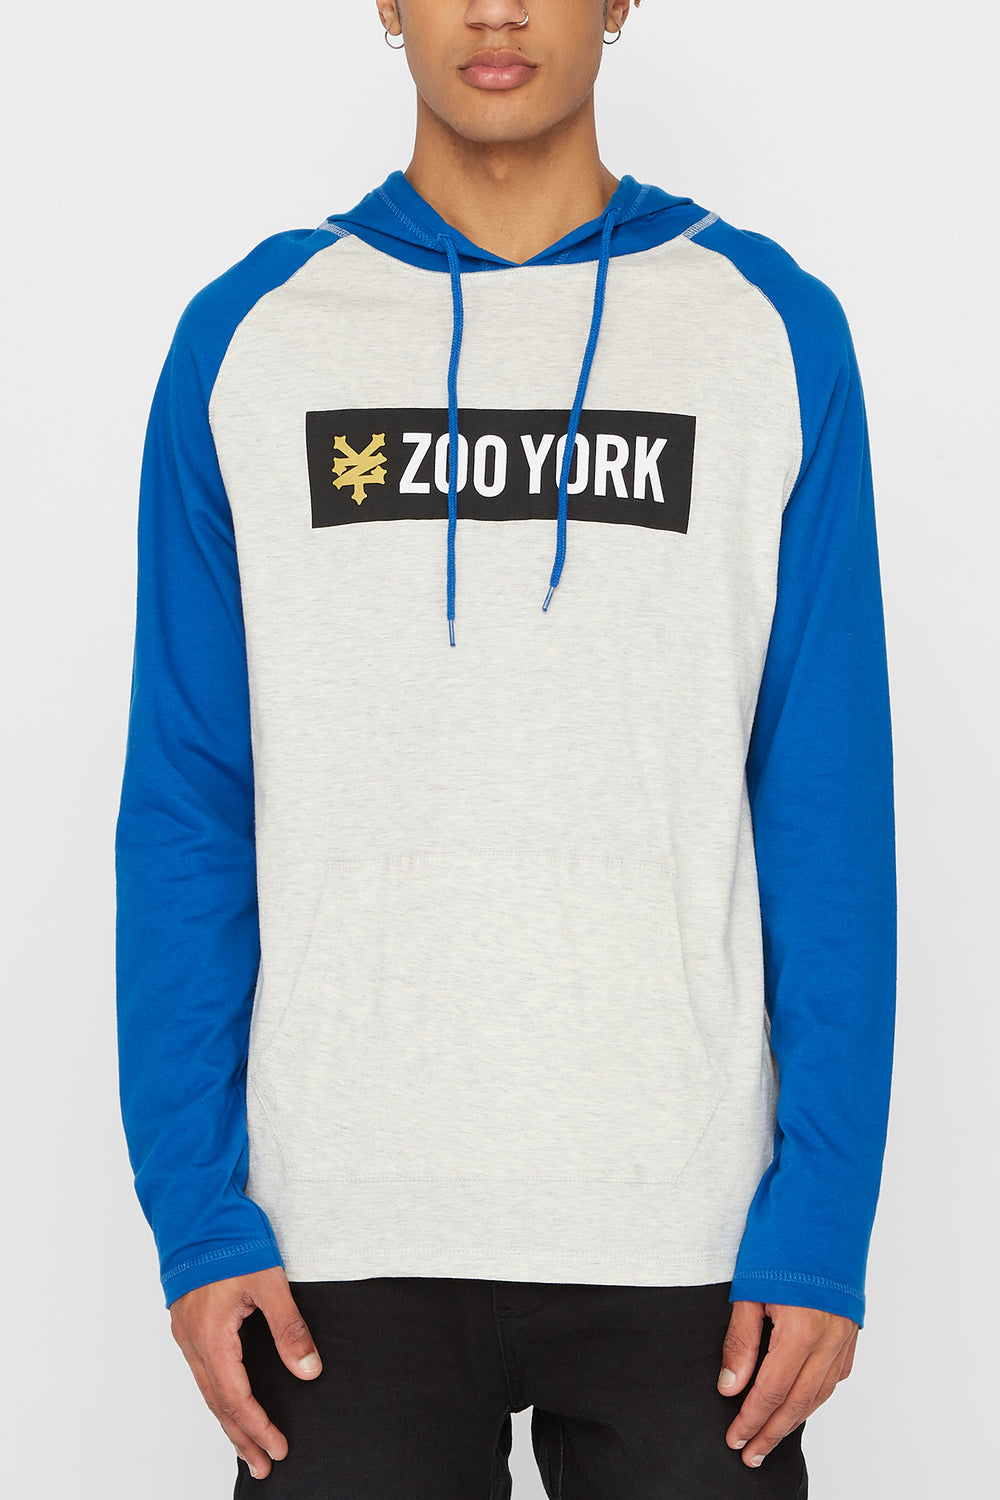 Zoo York Mens Hooded Long Sleeve Shirt Oatmeal